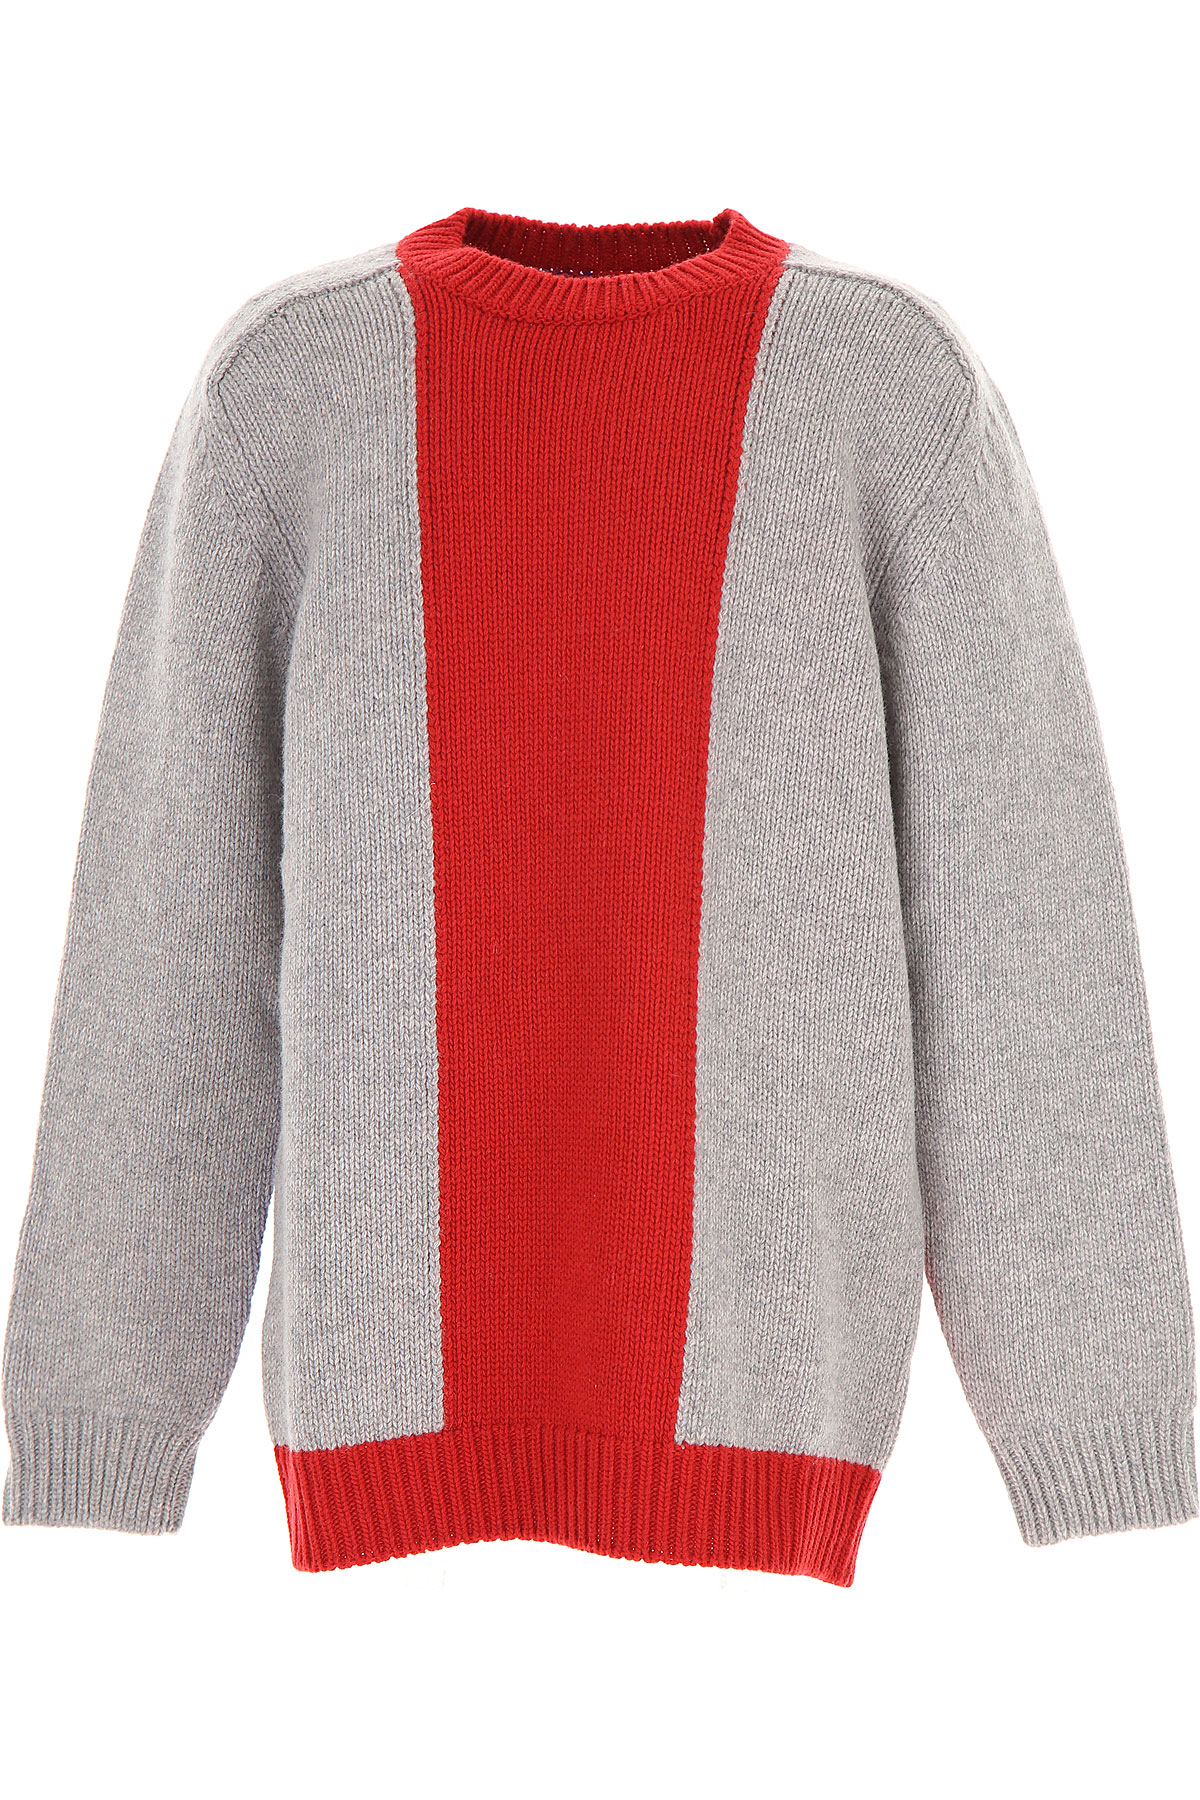 Image of Marni Kids Sweaters for Girls, Red, Wool, 2017, 10Y 14Y